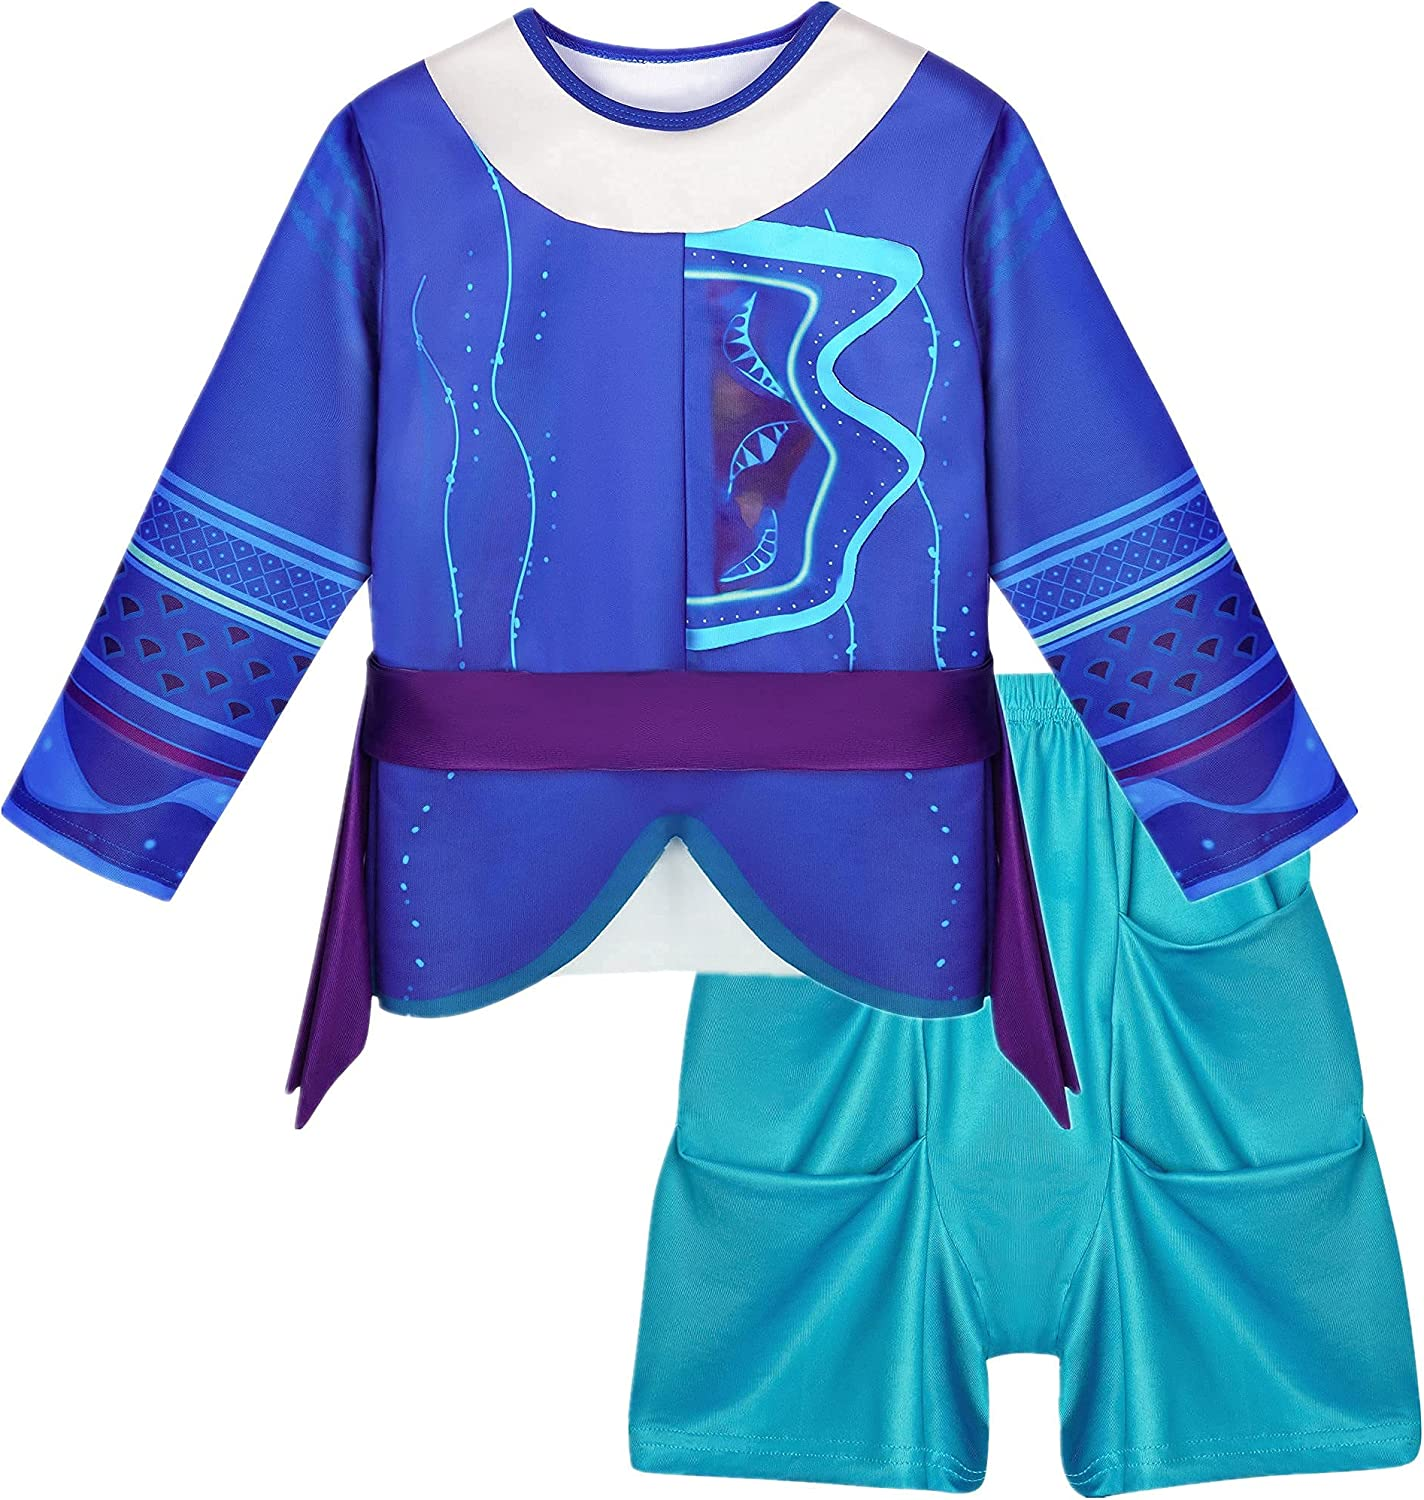 Girls Dragon Costume and The Halloween Adventure Classic Max 44% OFF Outfits Warrior